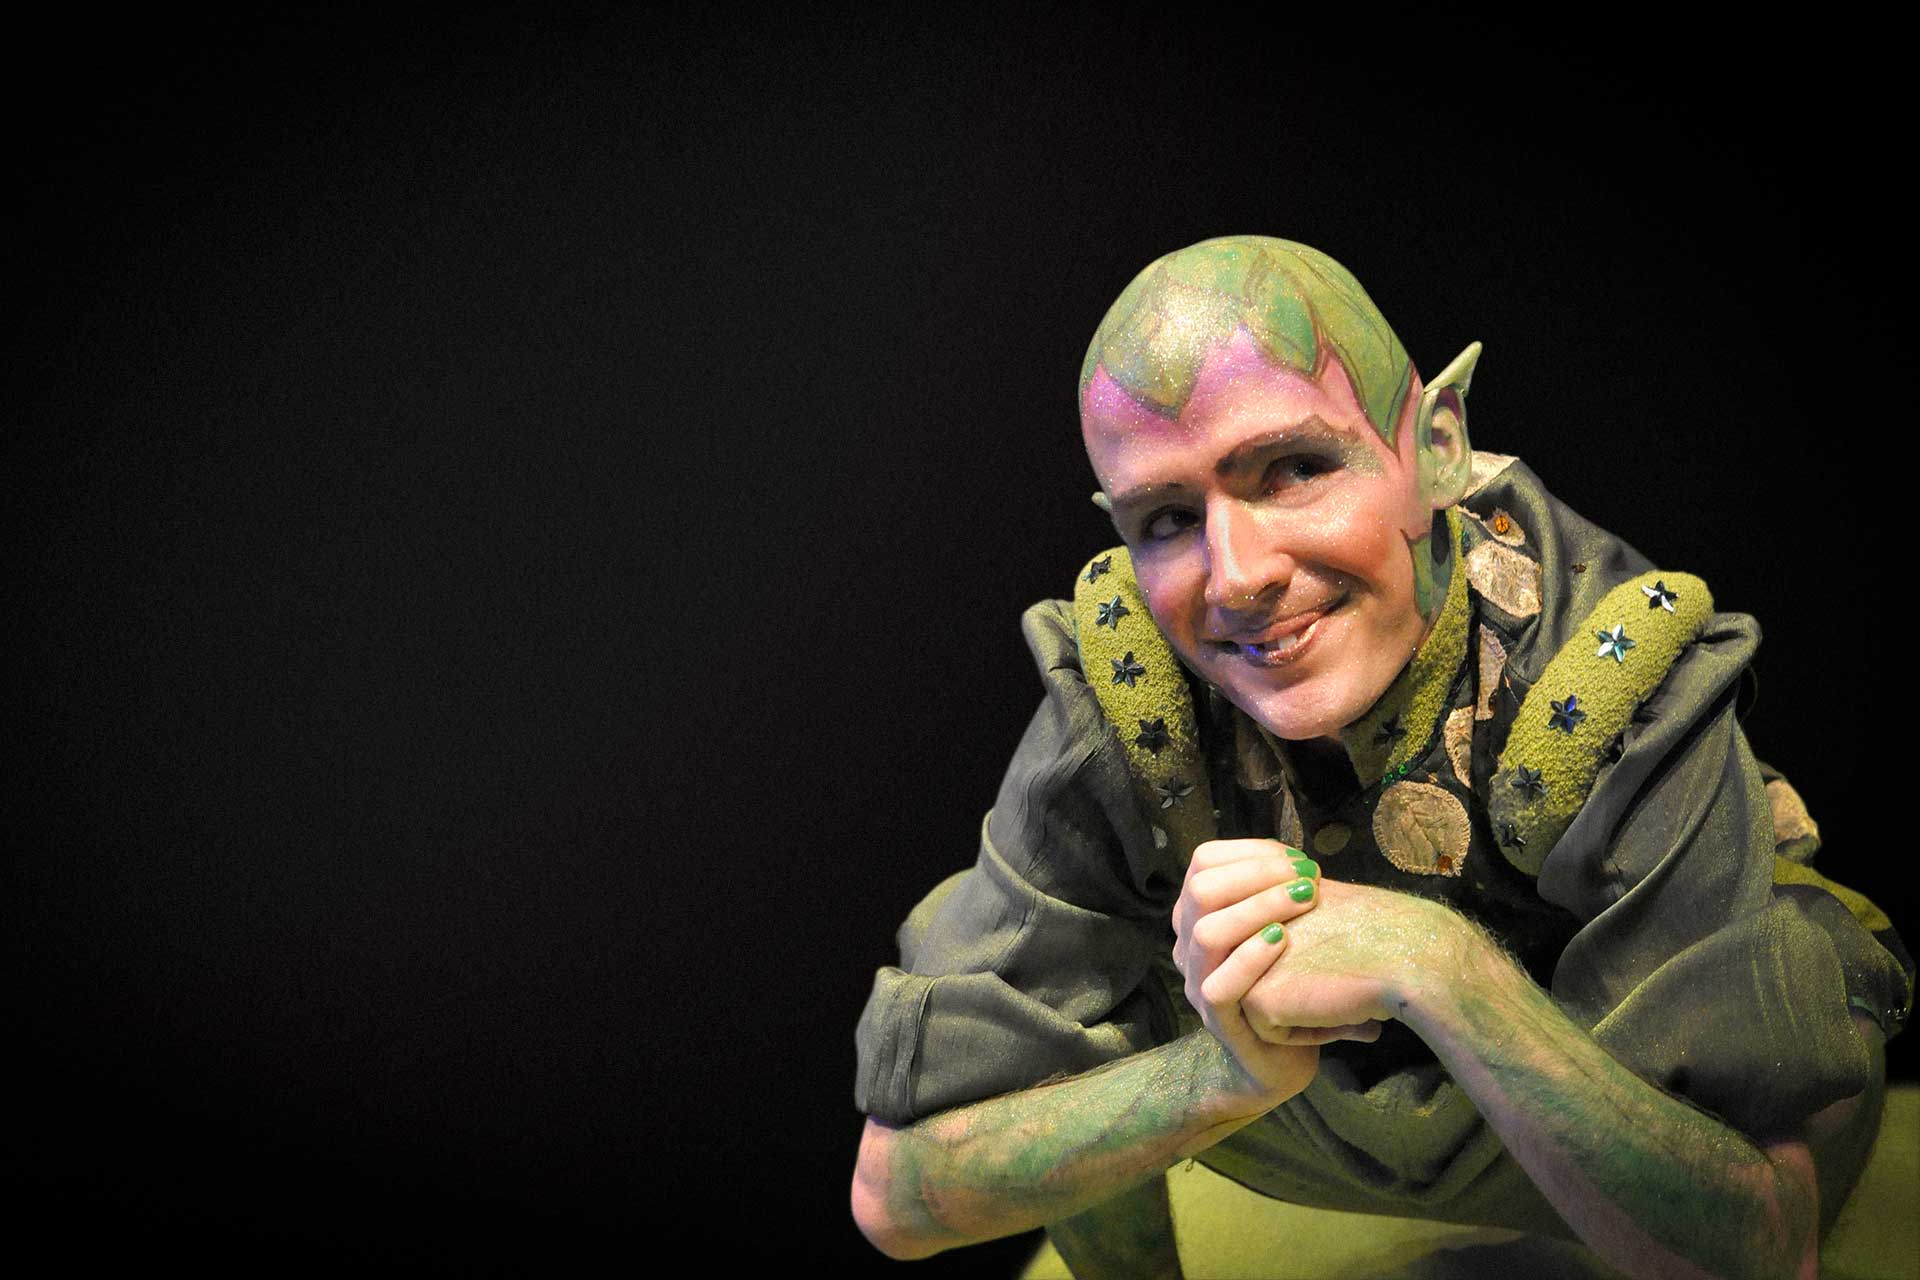 Noel Andrew Harron as the mischievous sprite, Puck, in S4K's A Midsummer Night's Dream